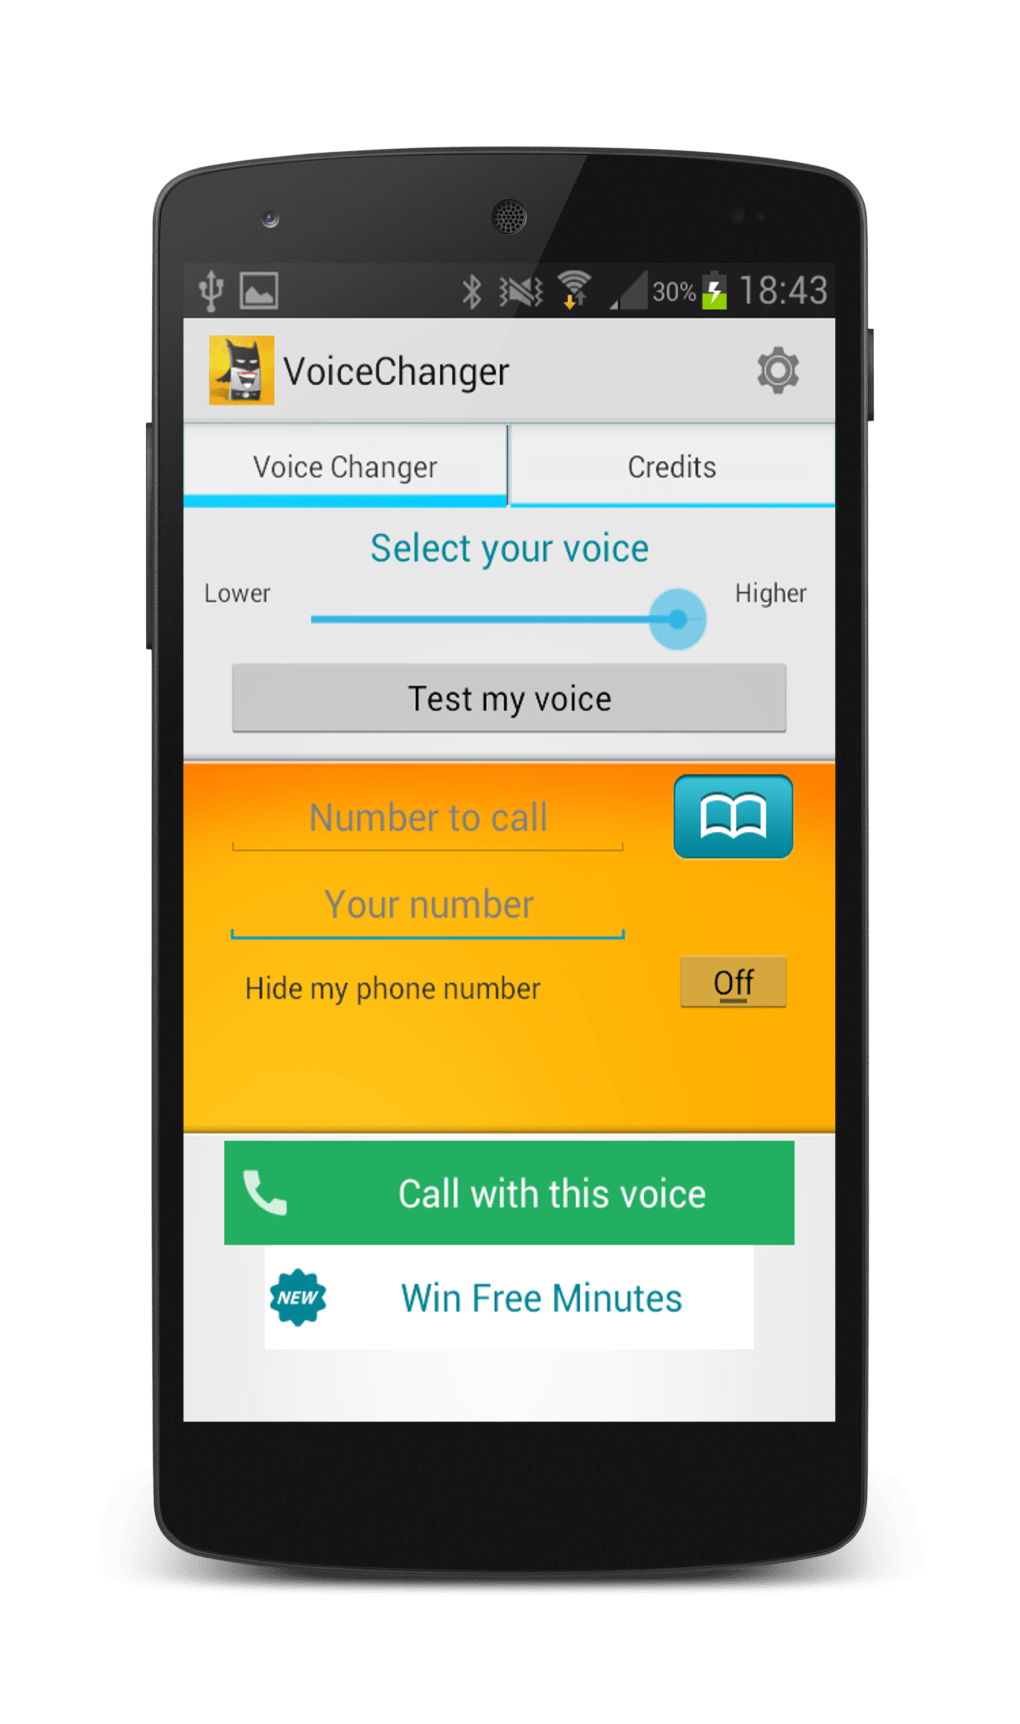 Voice Changer Allogag for Android - Download